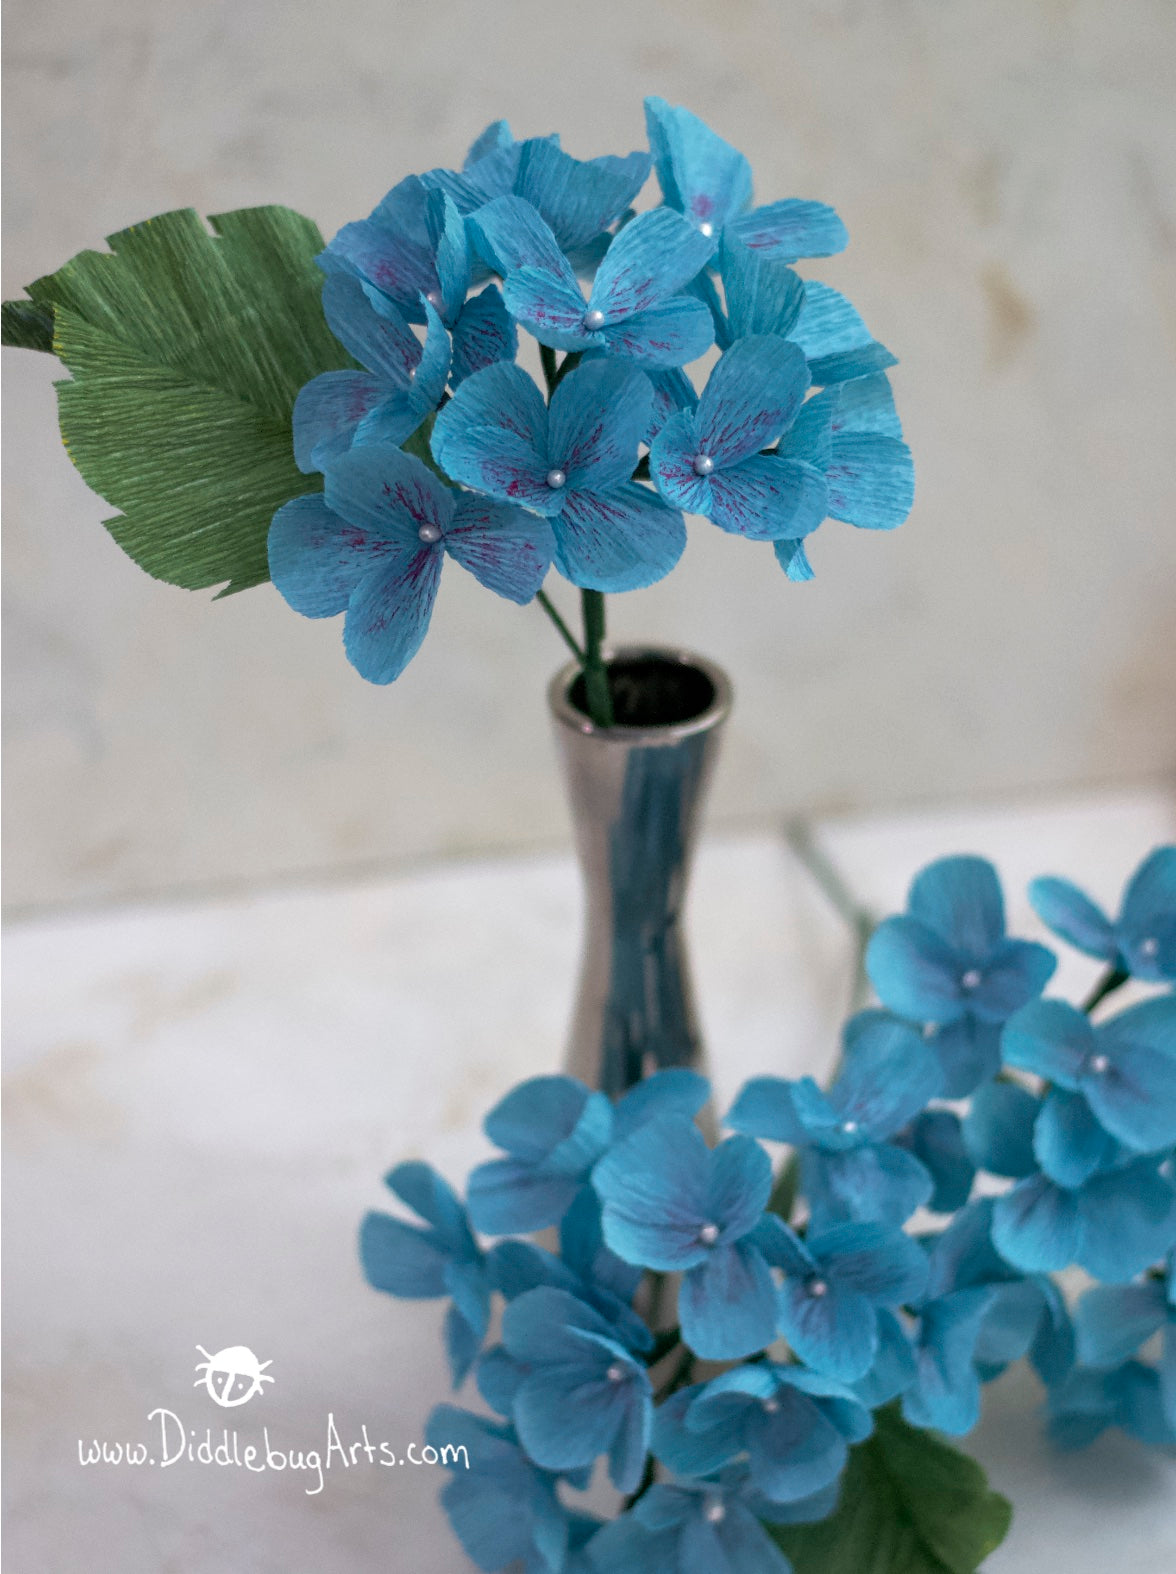 Crepe Paper Hydrangea Stem with Leaf